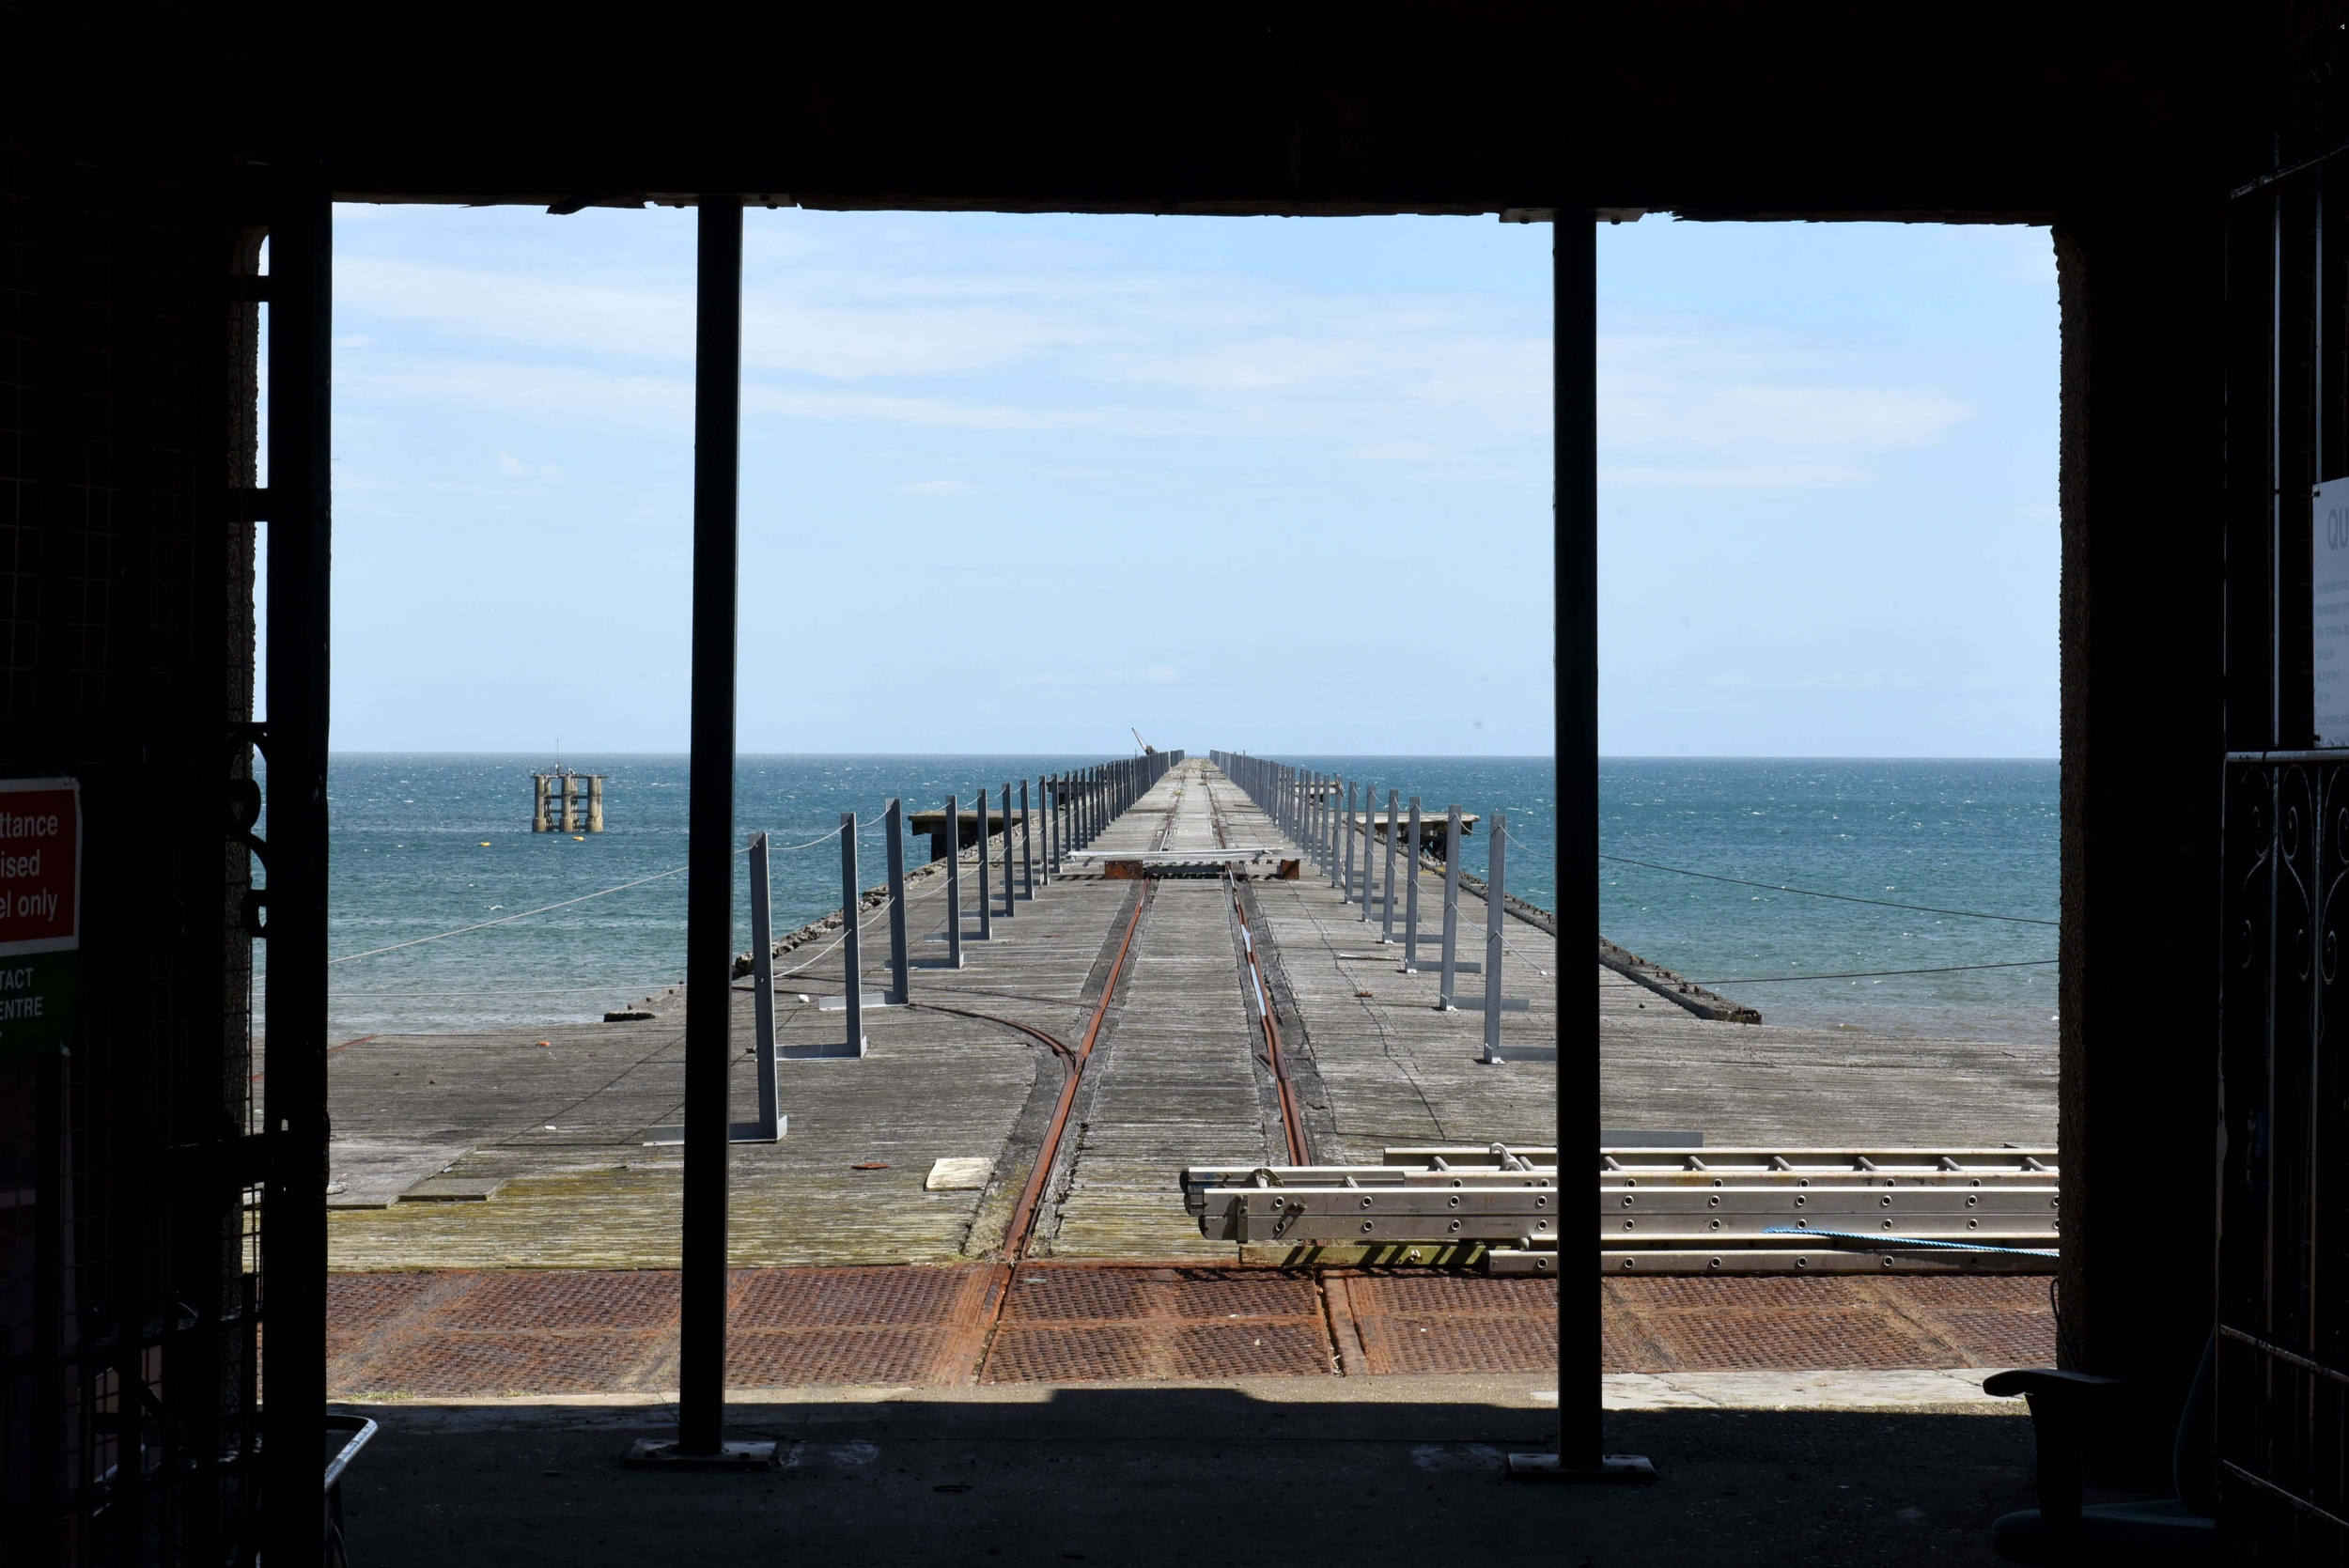 Preparatory work begins on the community project to restore the Queen's Pier in Ramsey